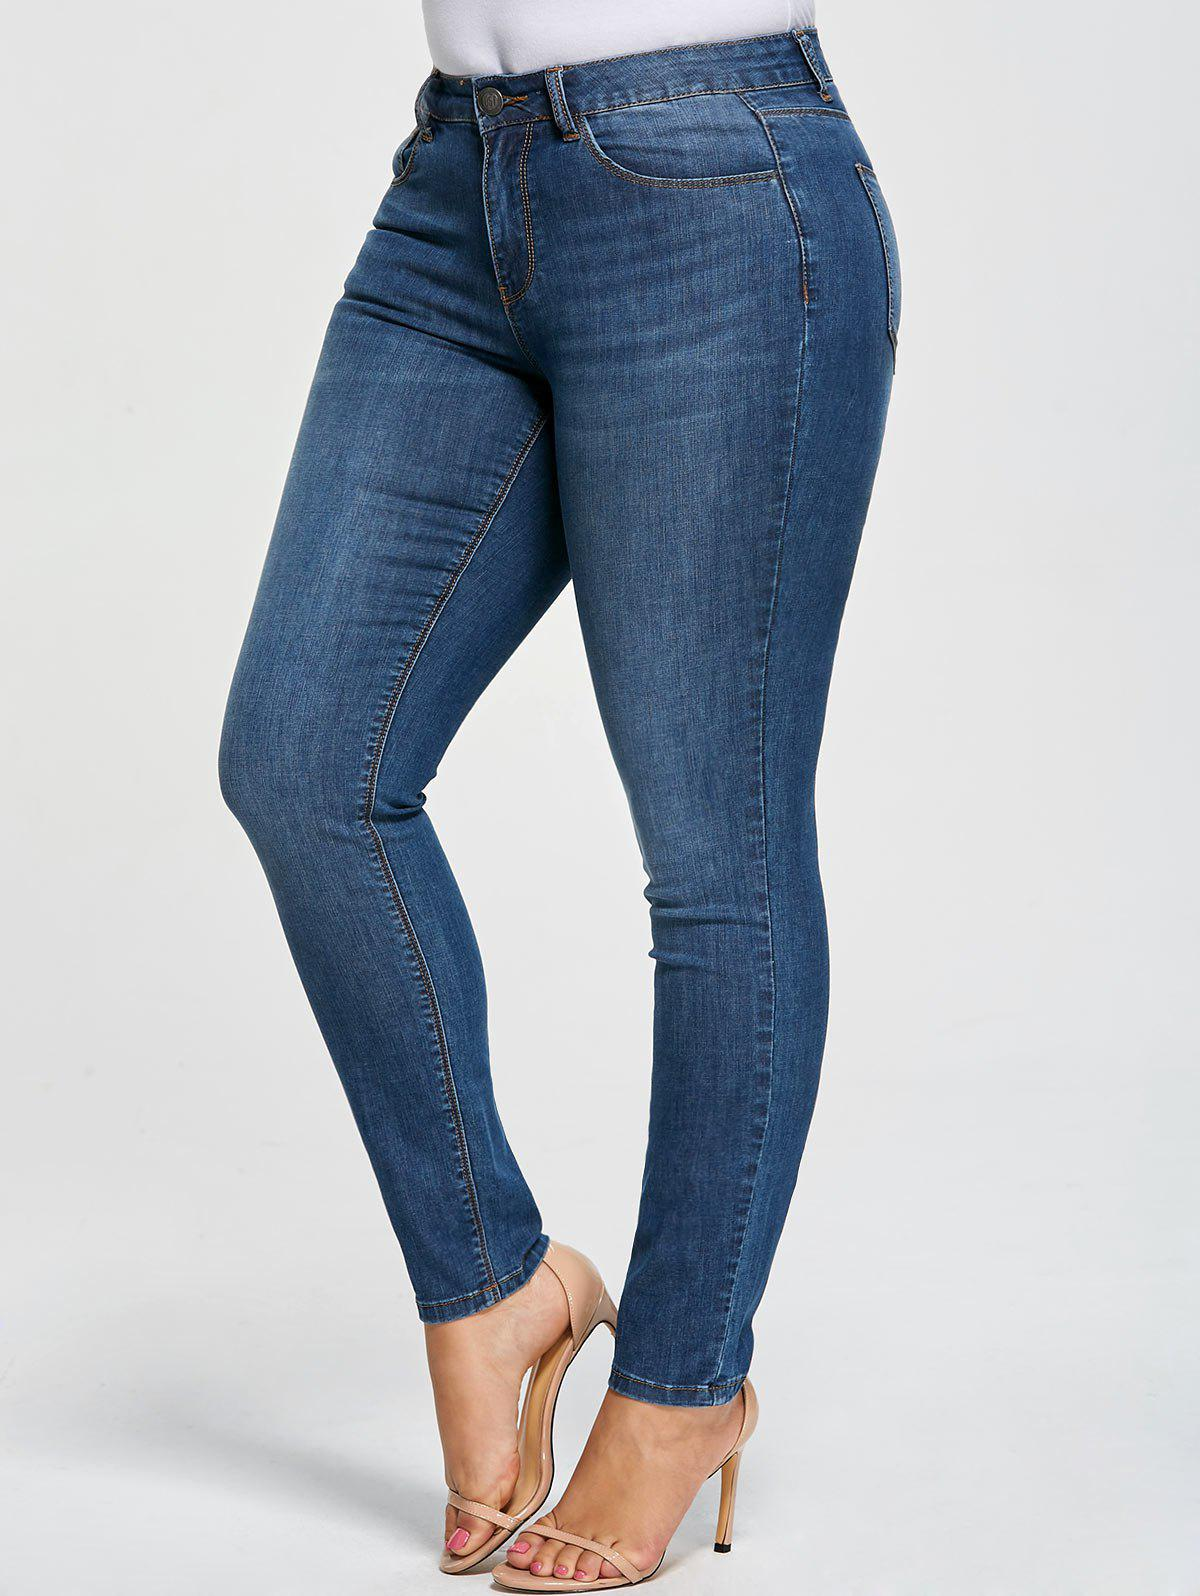 Fancy Plus Size Five Pockets Denim Pencil Jeans